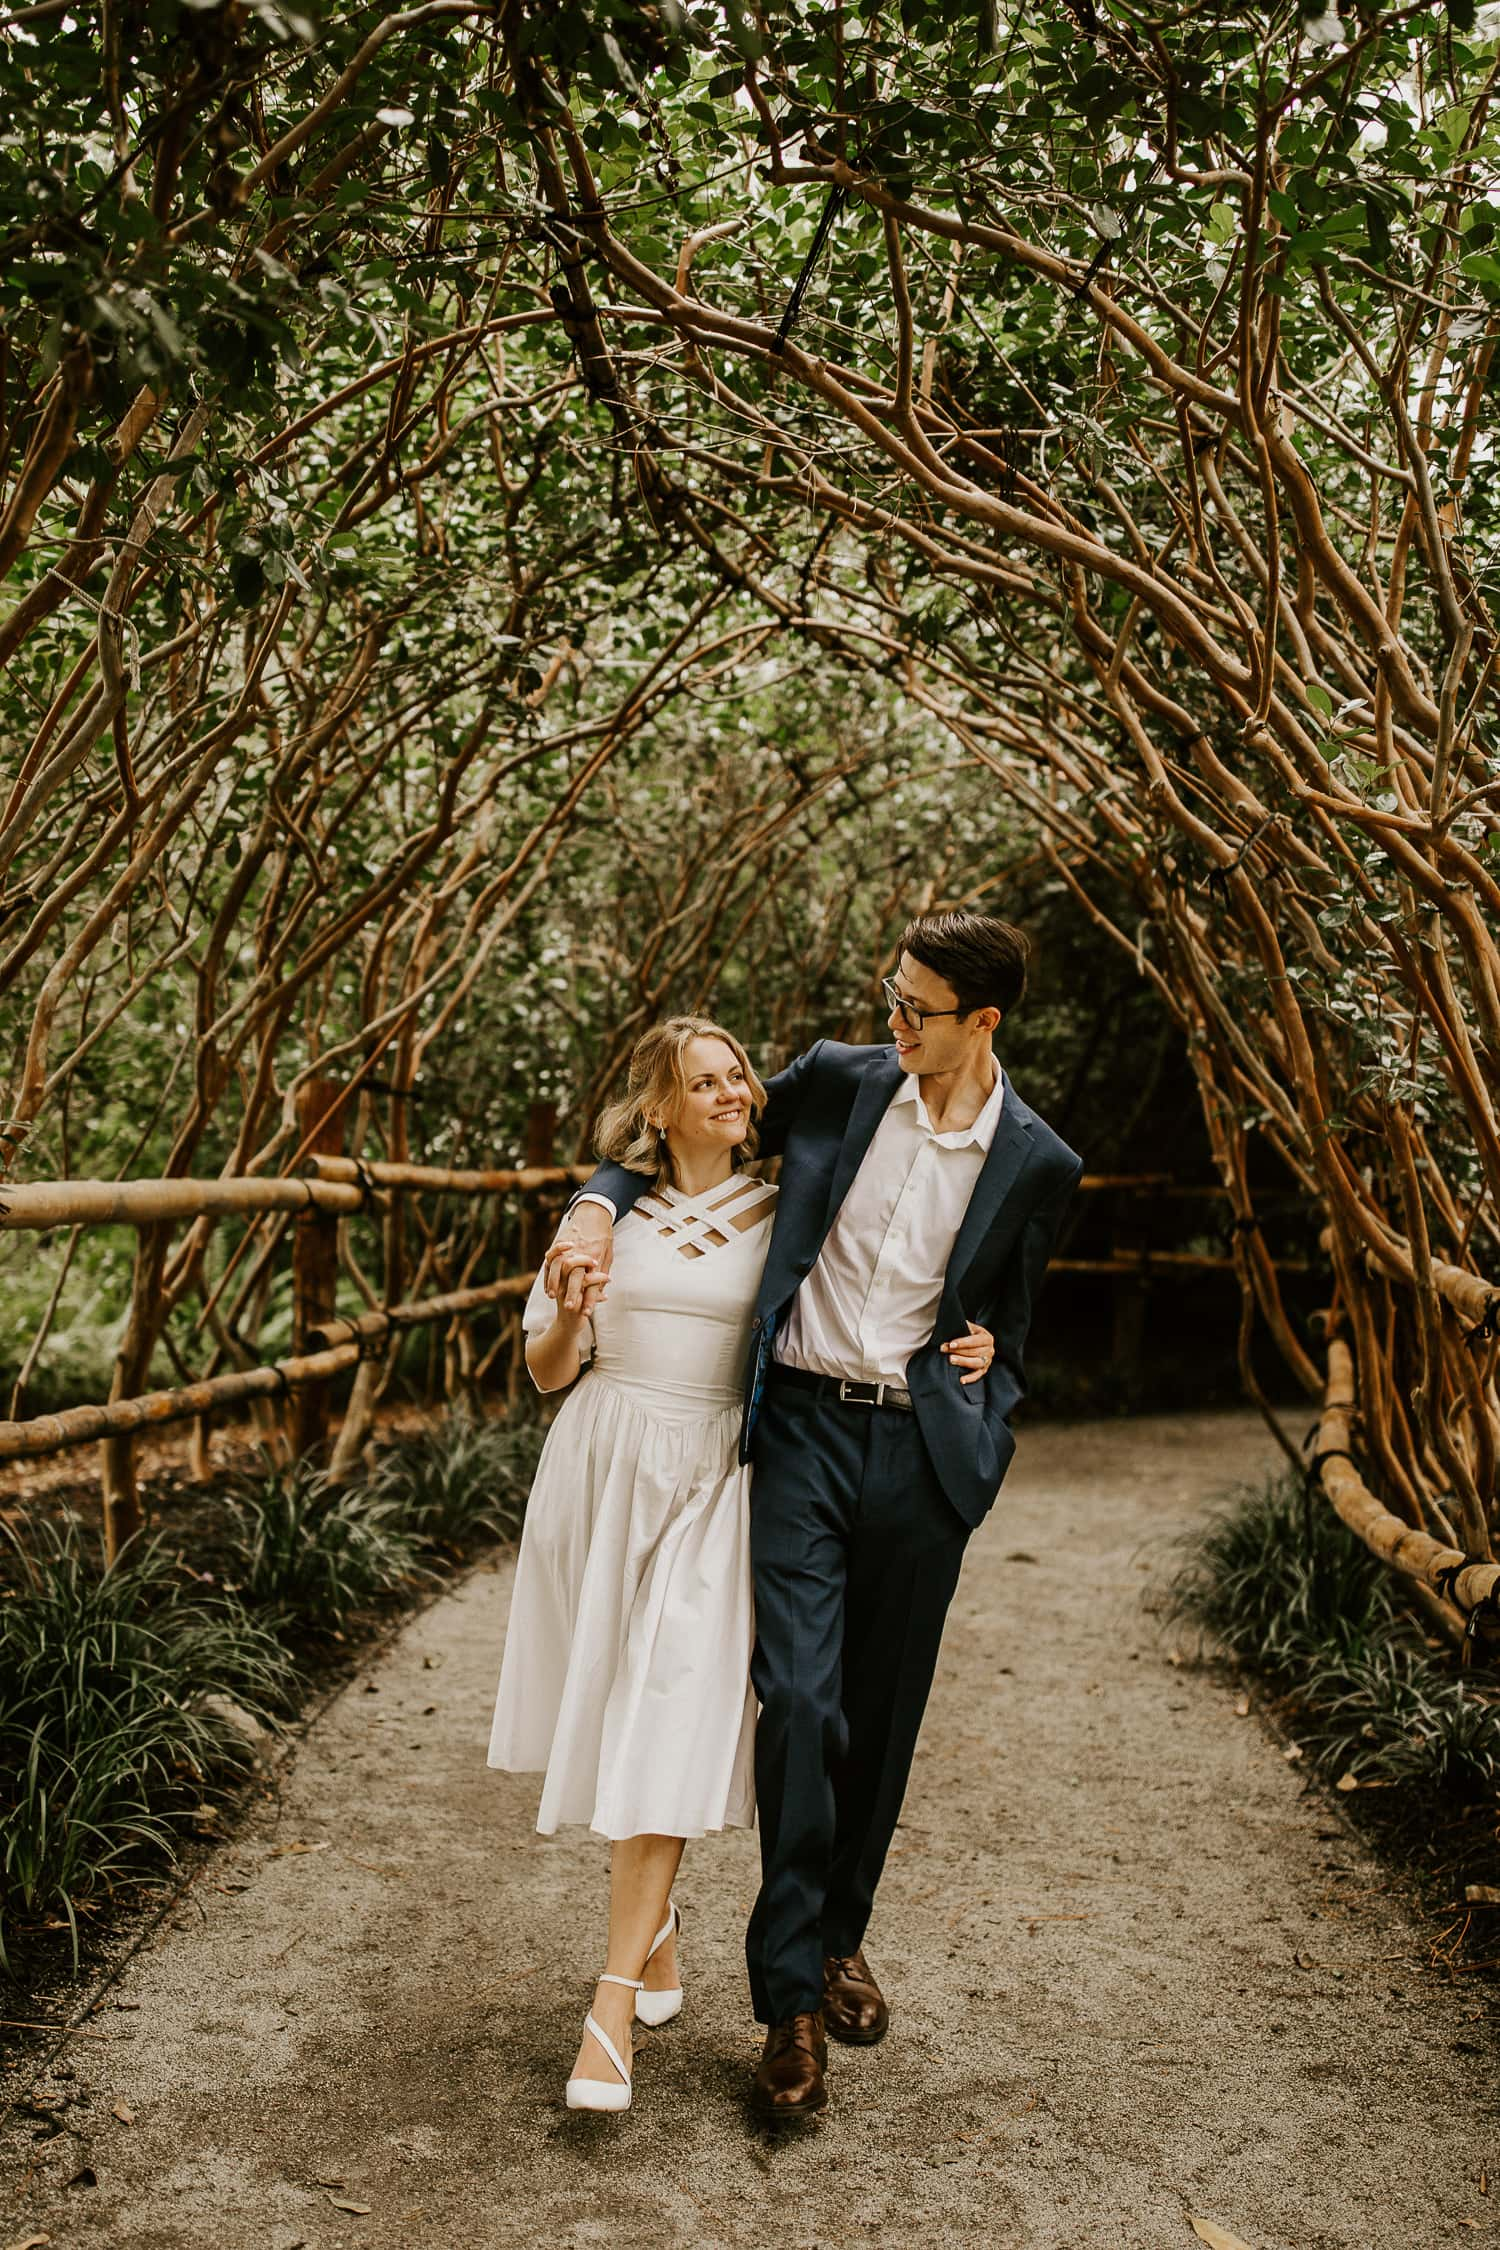 Bride and groom walking together under tree tunnel in Morikami Gardens, one of the most unique places to elope in Florida.